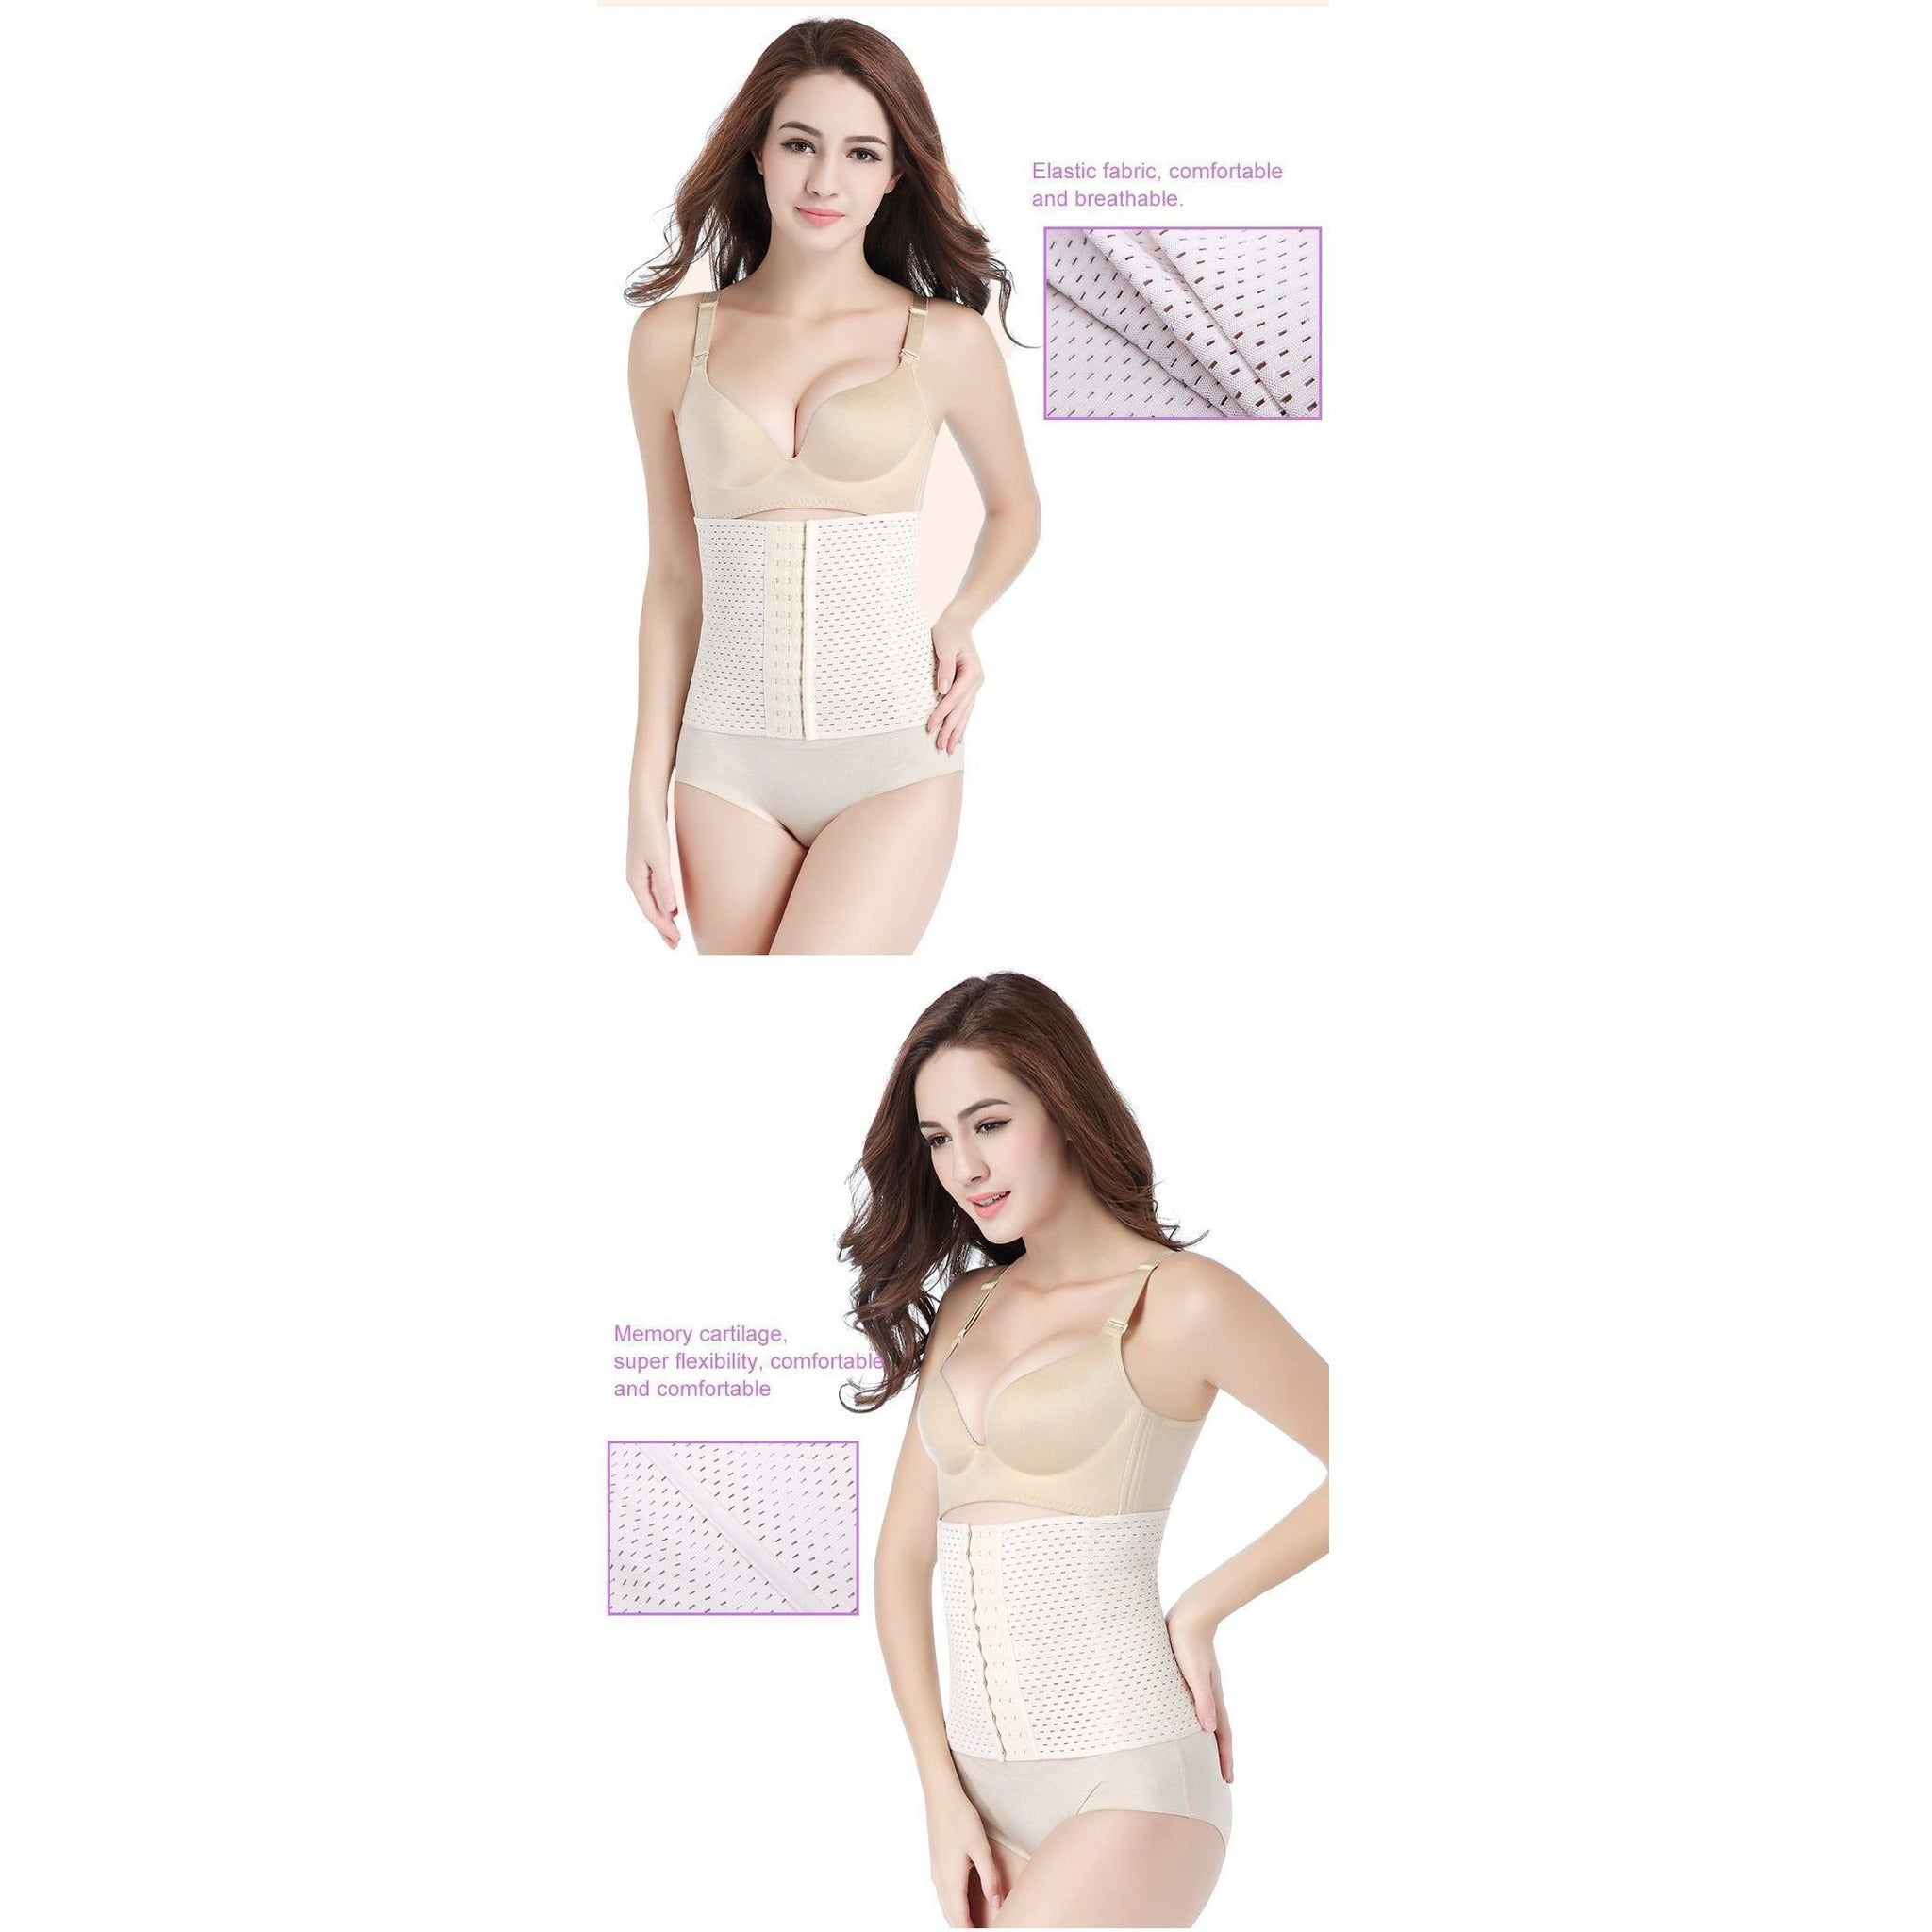 Slimming Shaper Waste Trainer - Hot Corset